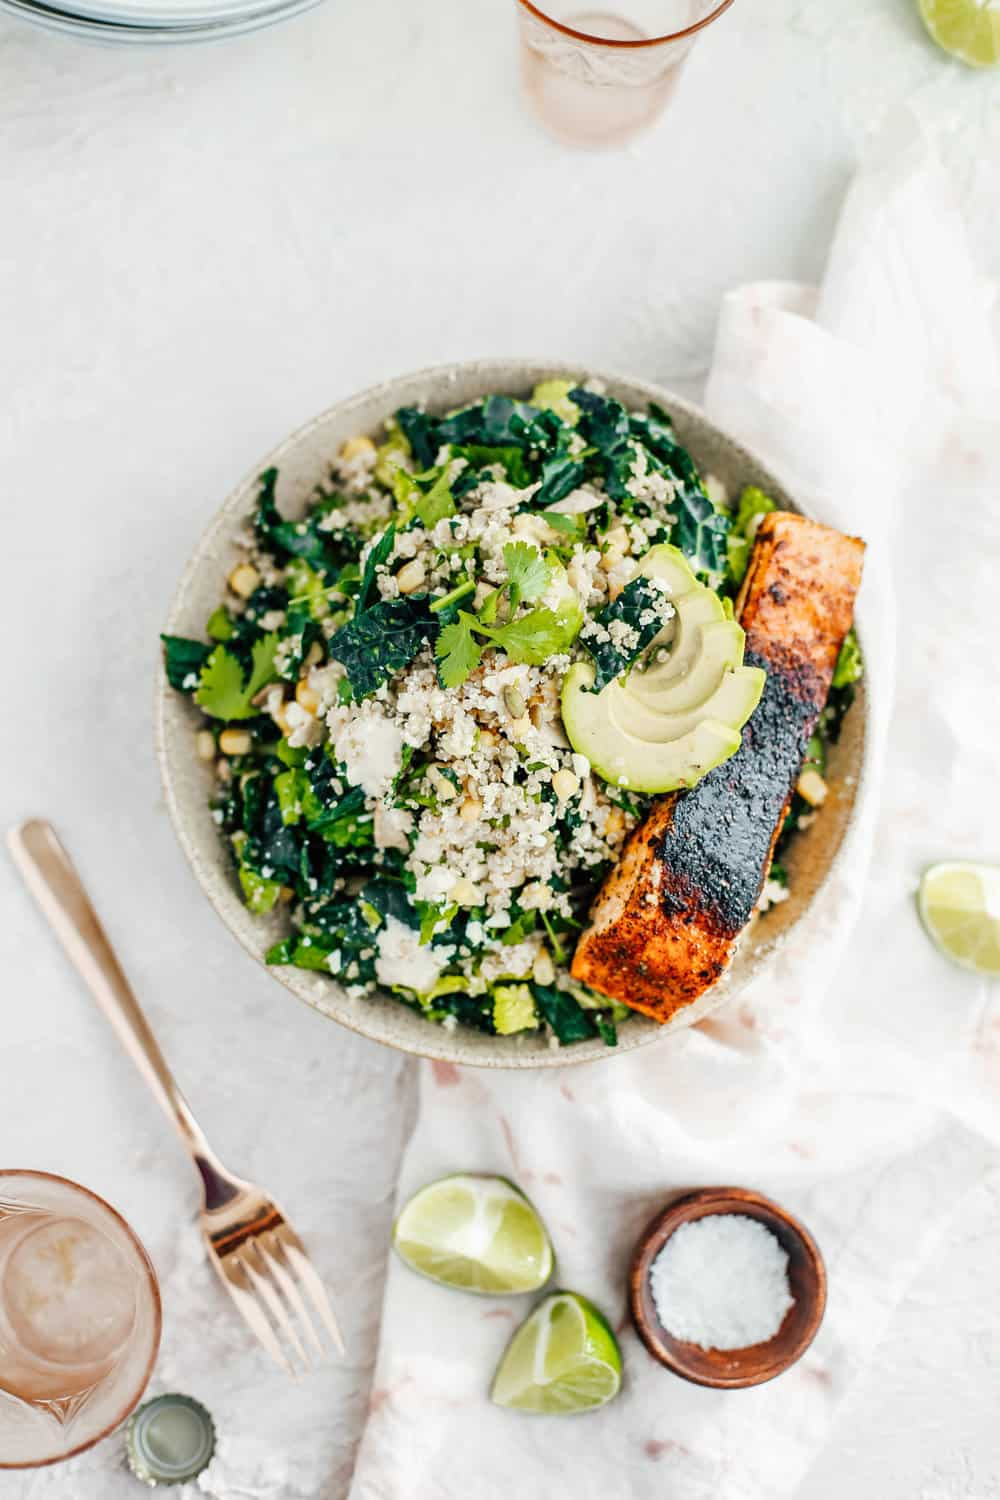 Kale Caesar Salad with Golden Corn Quinoa and Salmon in a Bowl